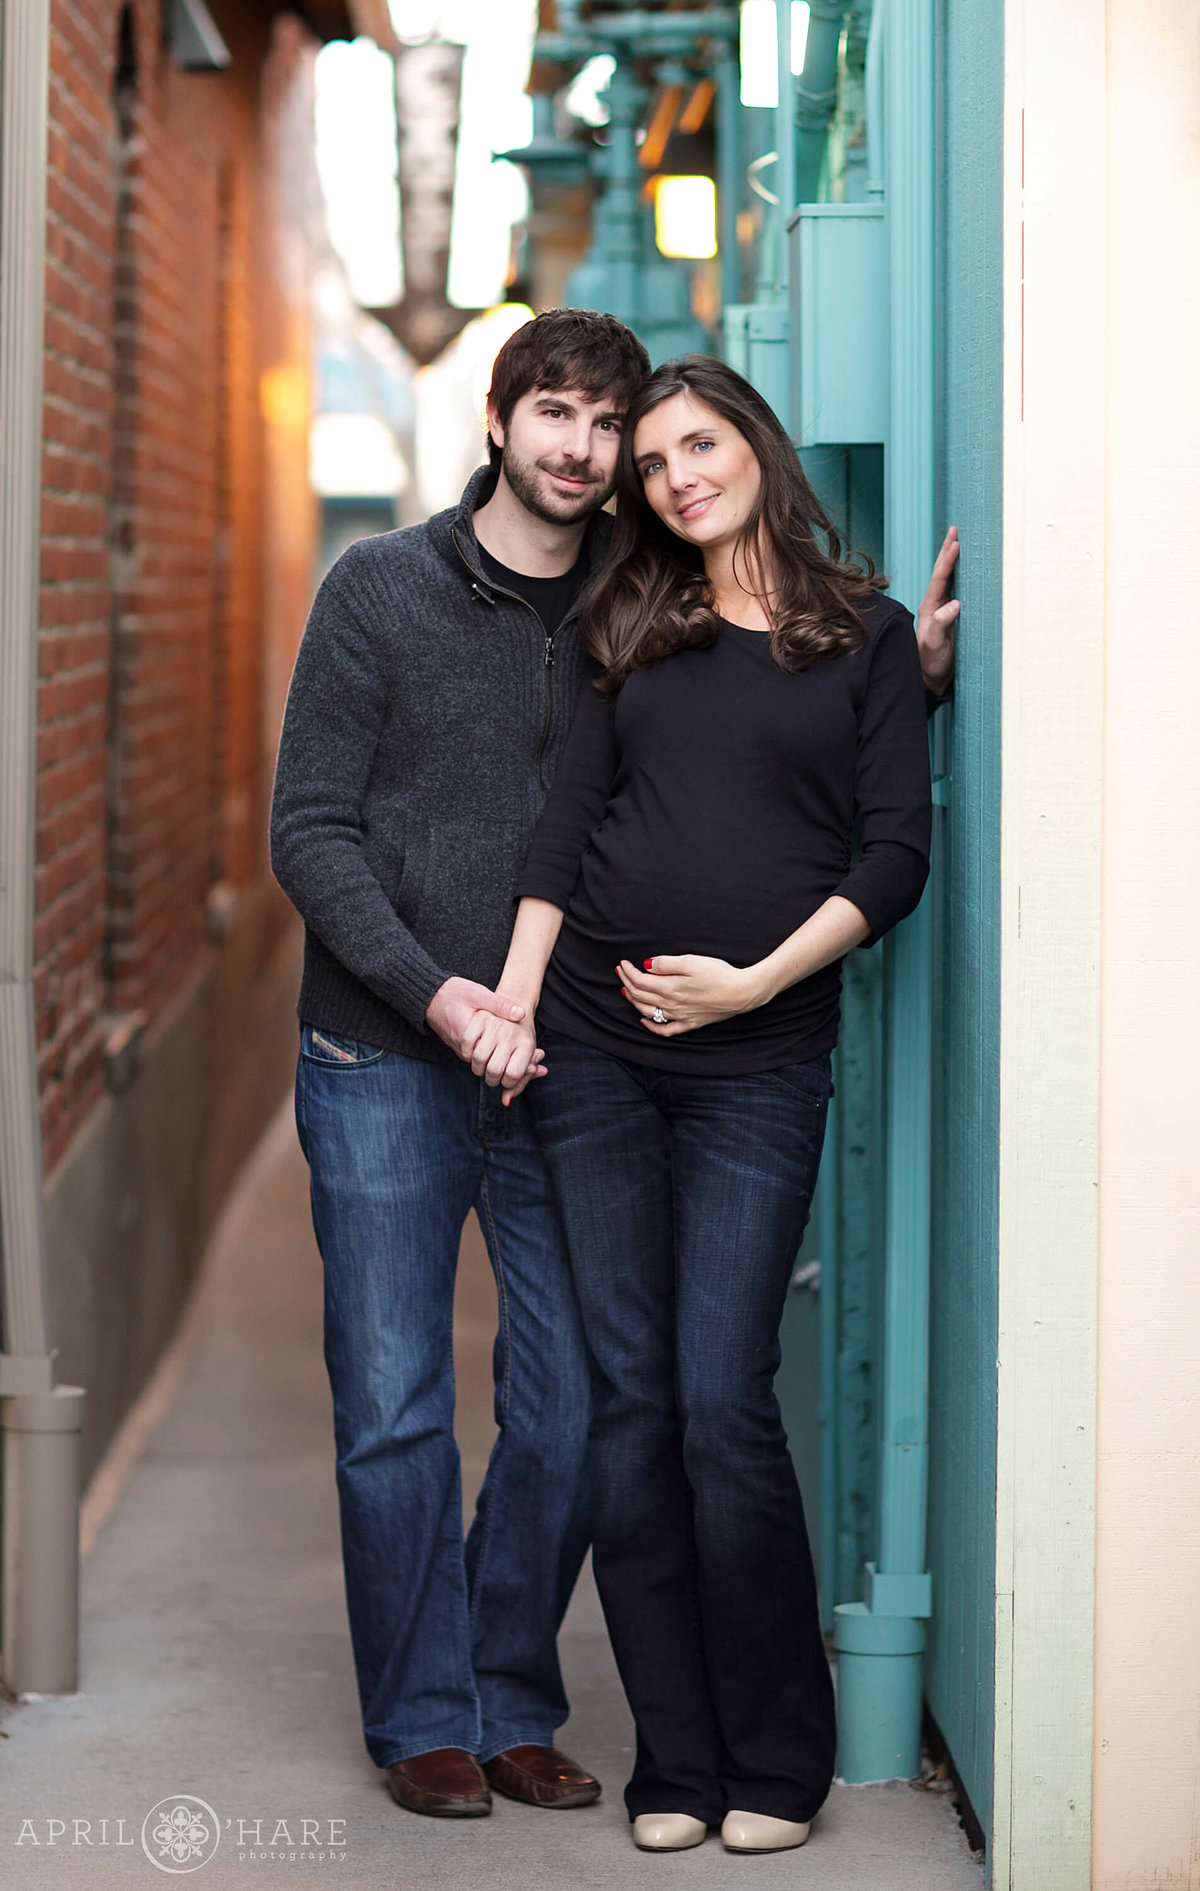 Cute Urban Maternity Photography Session in the Highlands Neighborhood